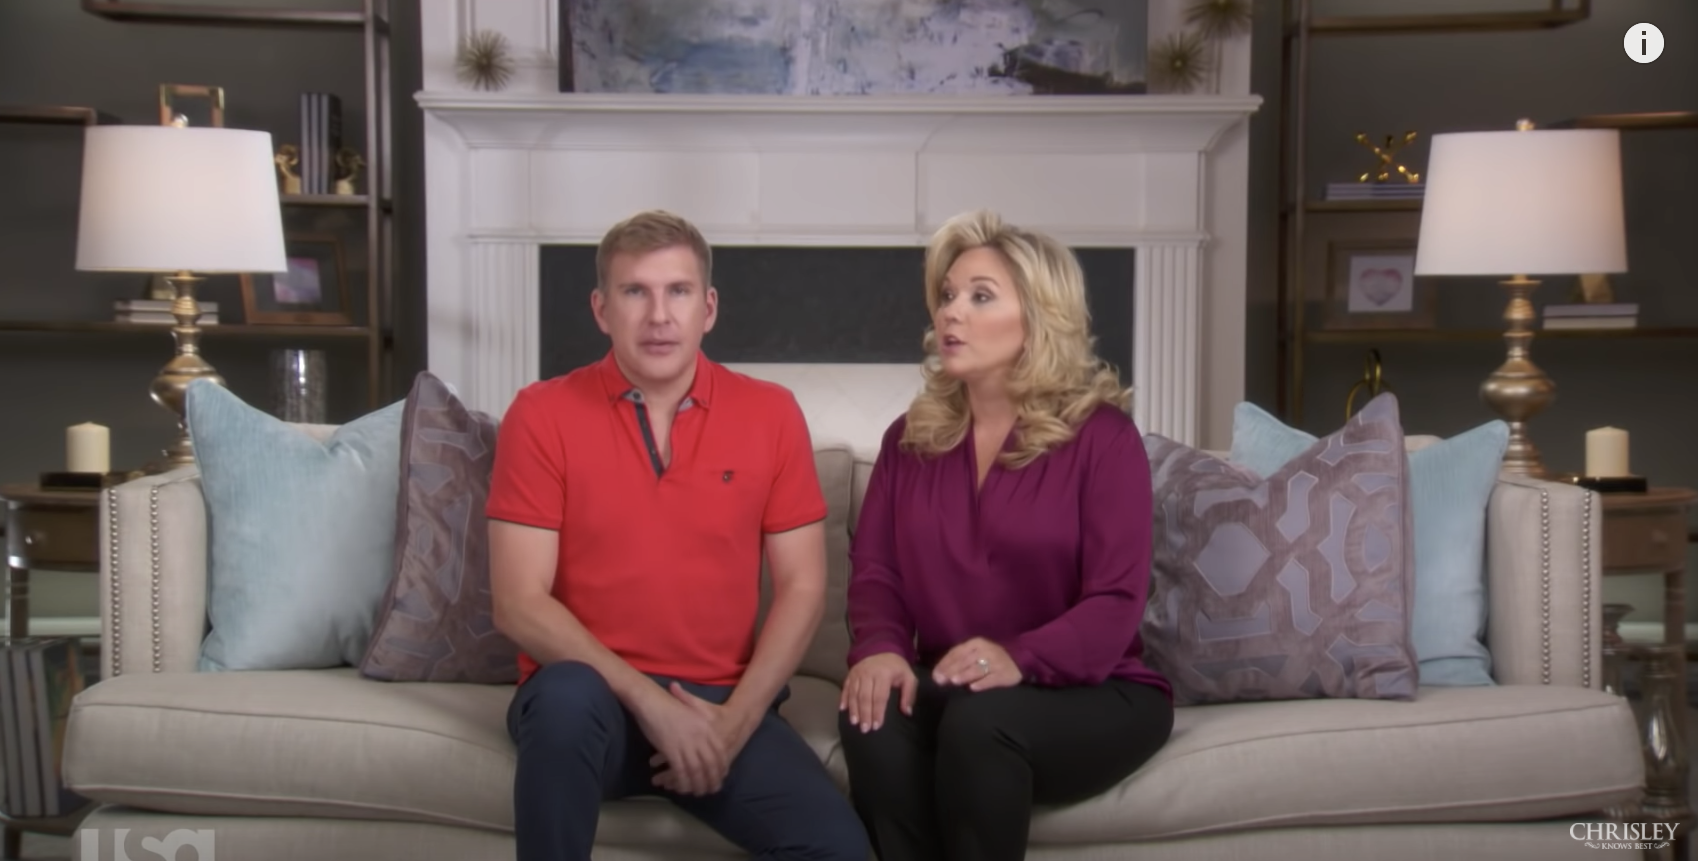 Chrisley Knows Best Todd Chrisley trial